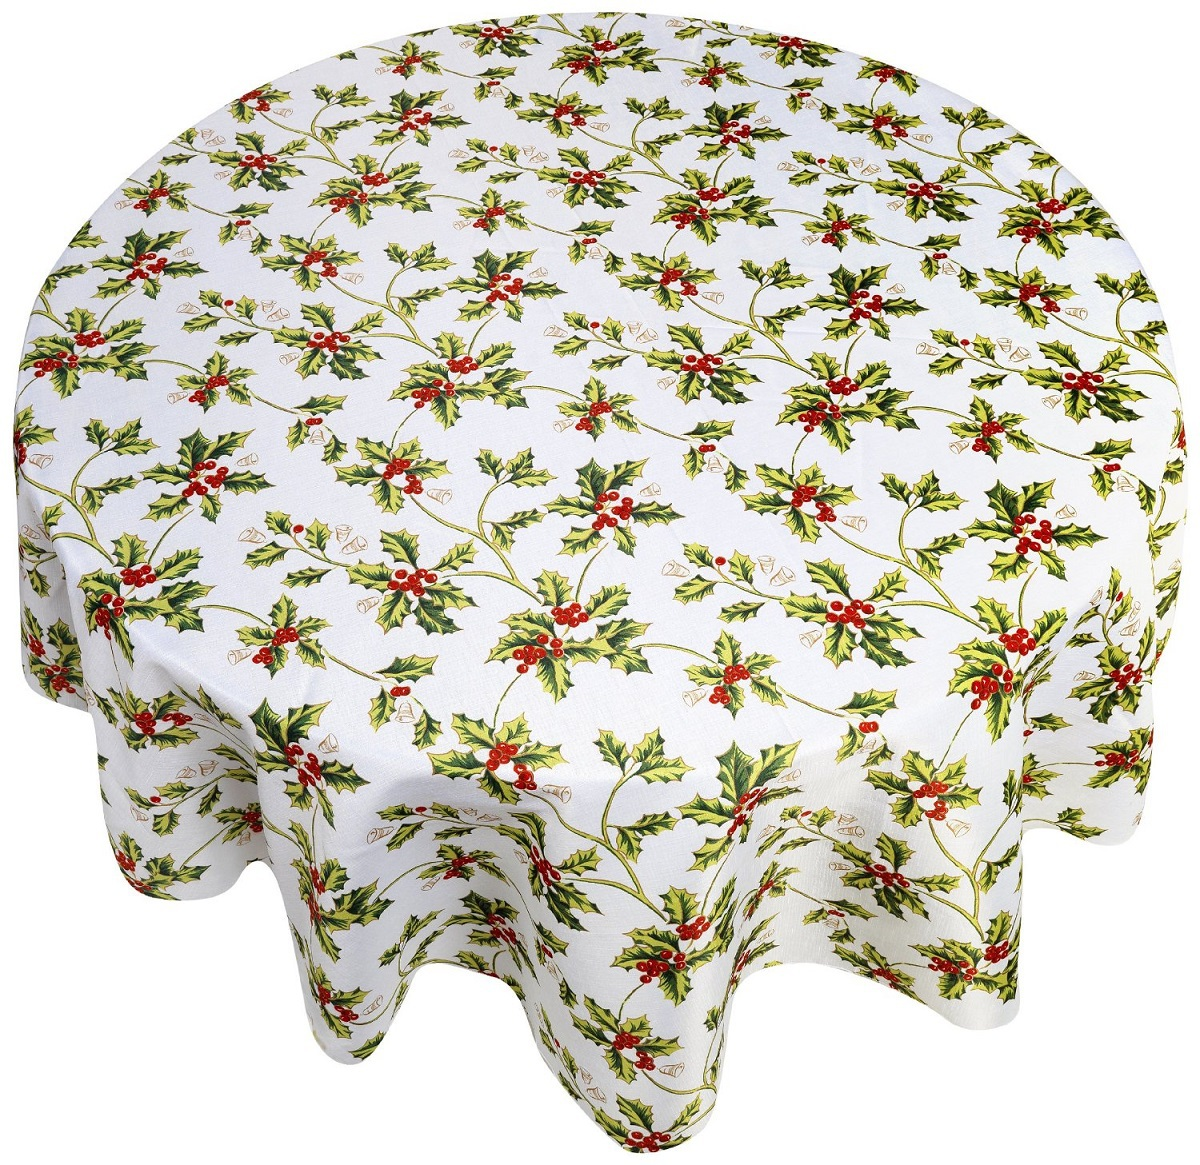 Кухня Скатерть круглая 178 Carnation Home Fashions Christmas Fabric Tablecloths Holly skatert-carnation-christmas-fabric-tablecloths-holly-ssha-kitay.jpg